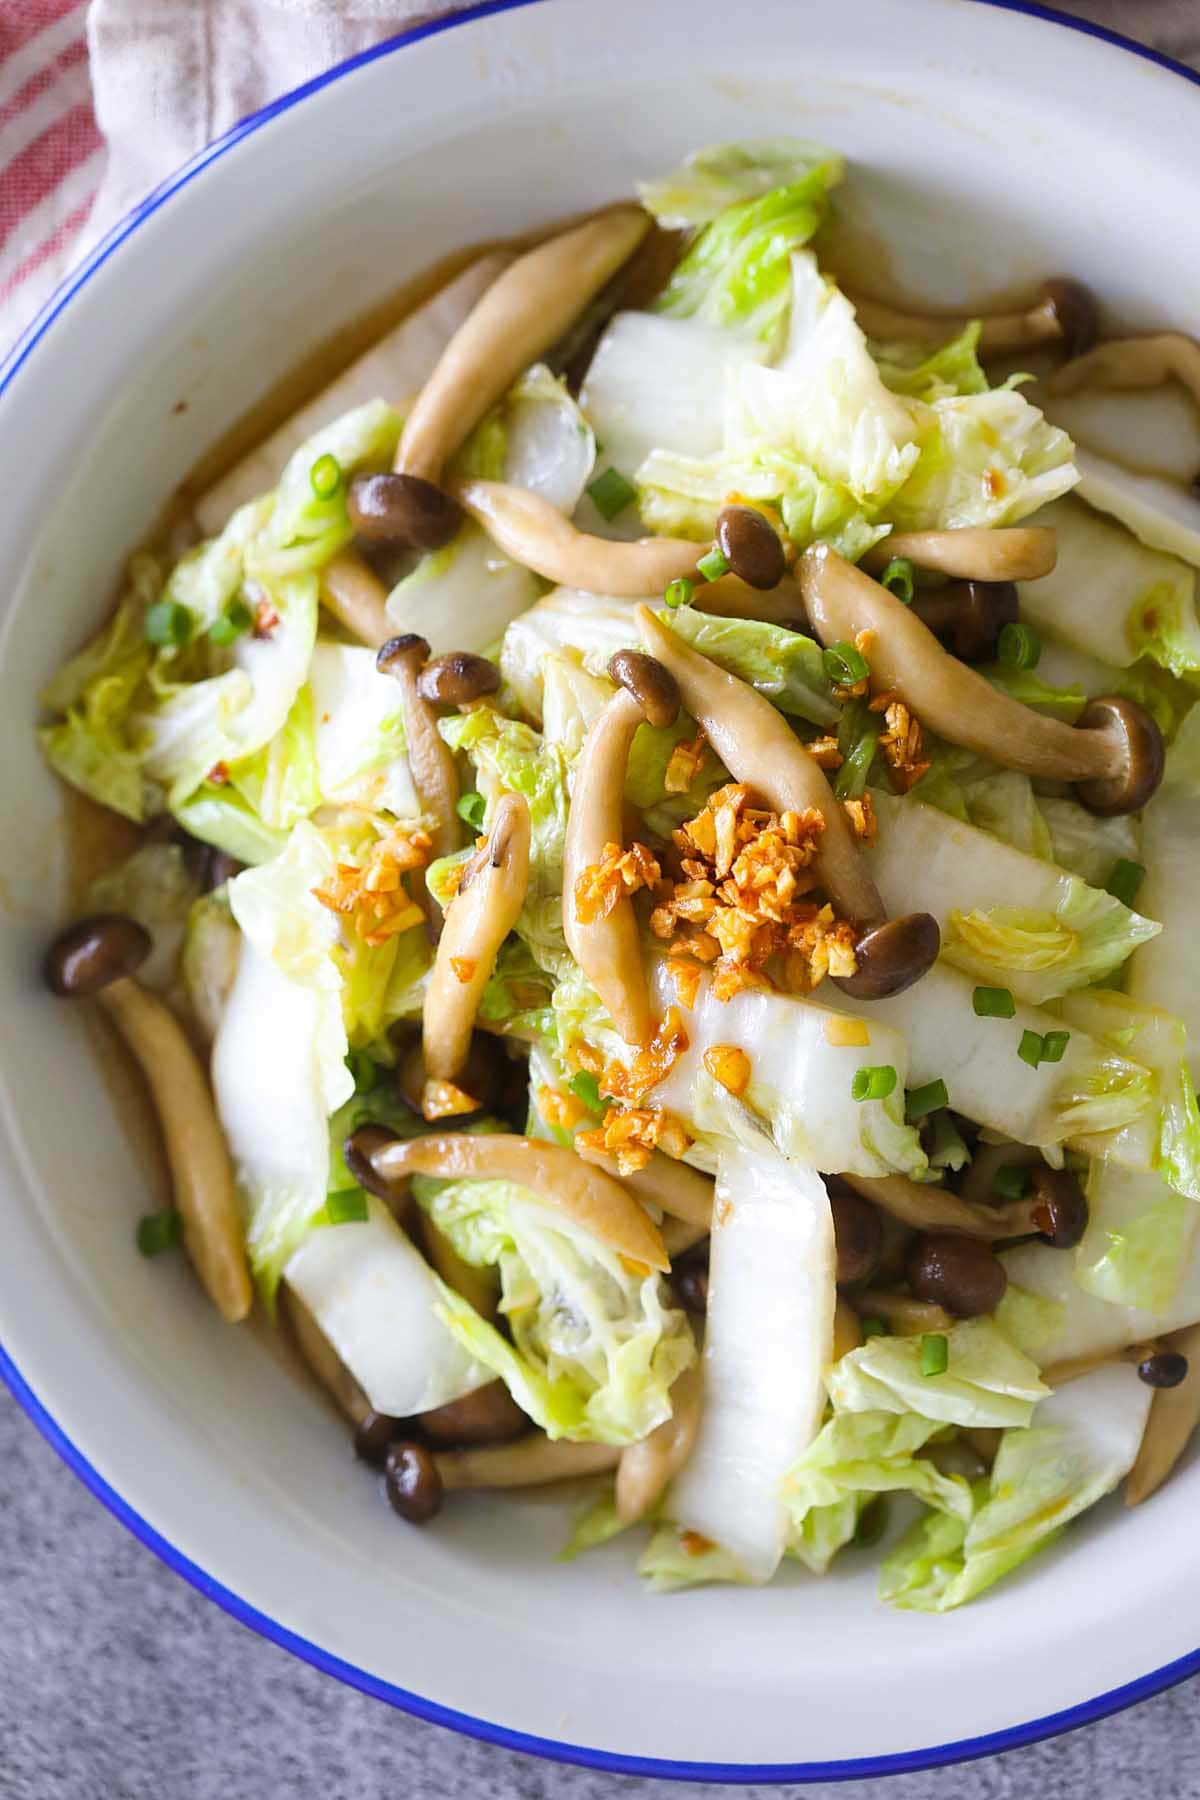 Homemade Chinese cabbage stir fry with mushroom and oyster sauce.